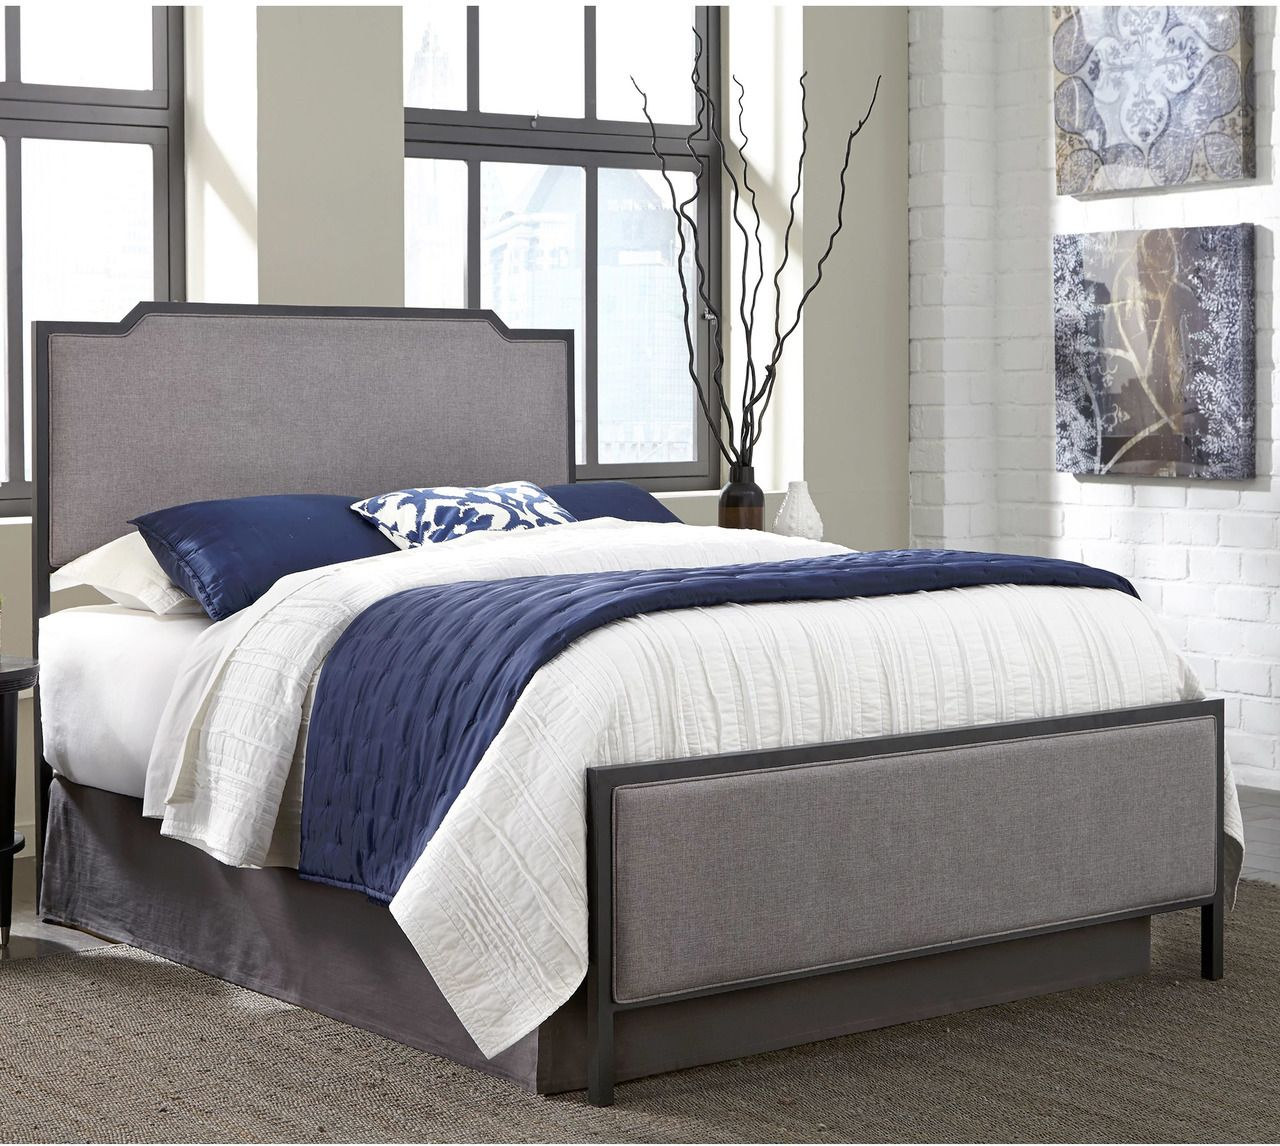 Fashion Bed Group Bayview Bed   Bedplanet.com   Bedplanet   home ...